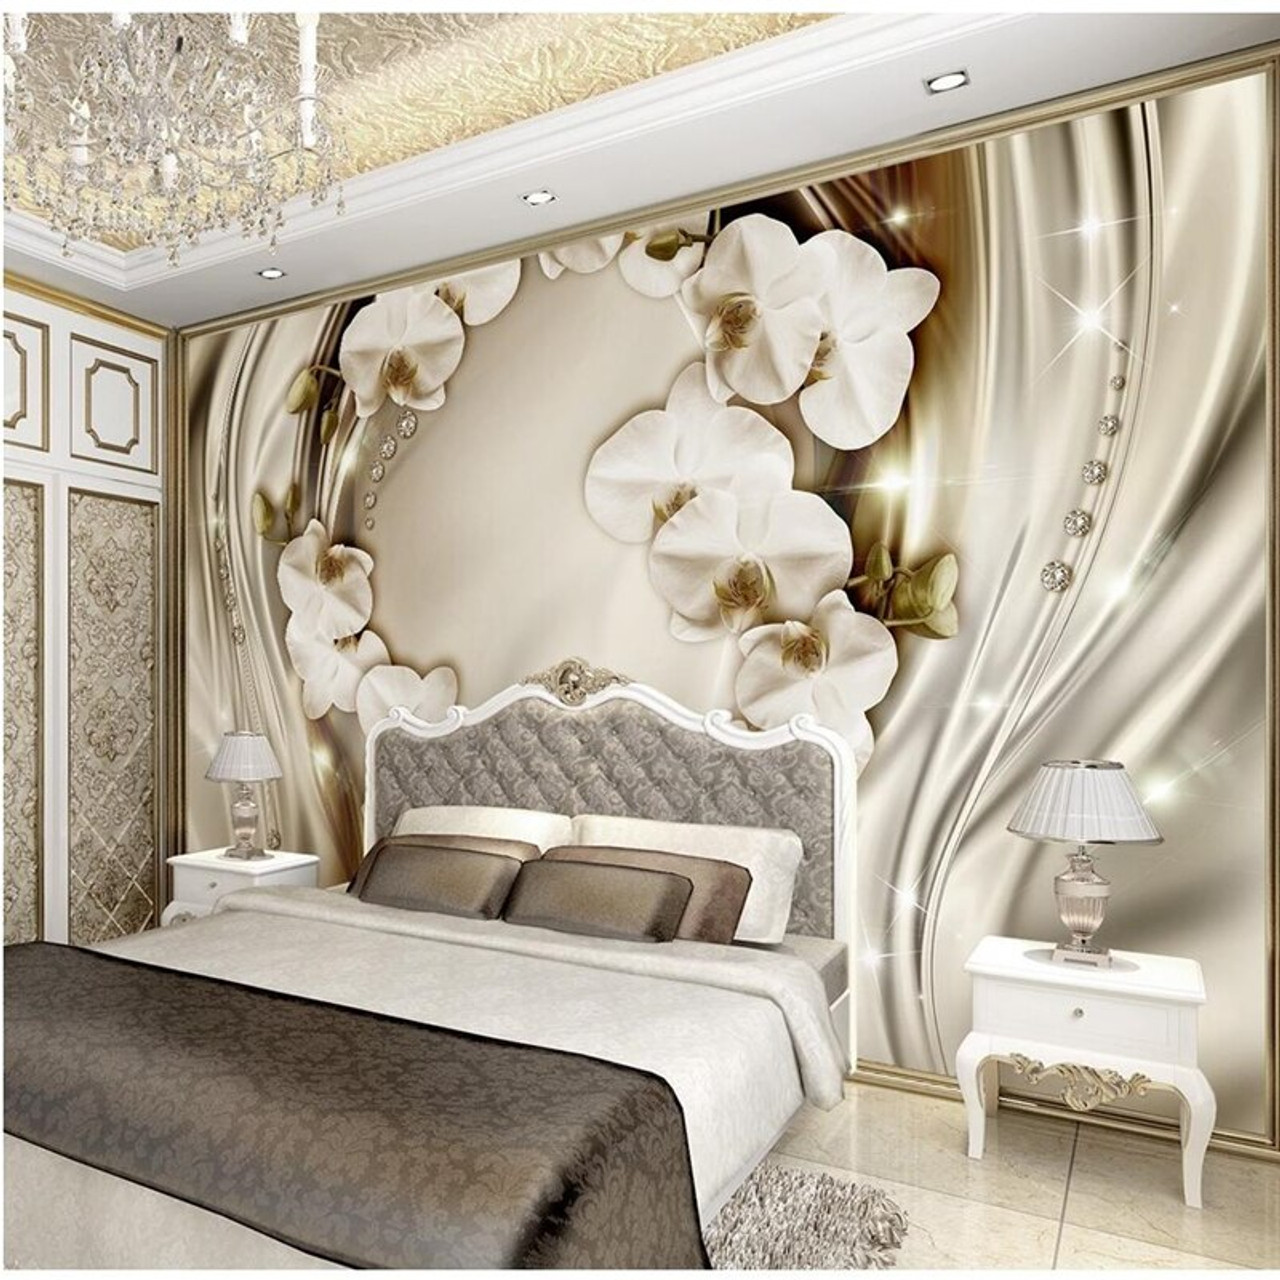 Beibehang Custom Wall Paper Diamond Romance Luxury Wall Covering Bedroom Mural Background 3d Flooring Wallpaper For Walls 3 D Onshopdeals Com